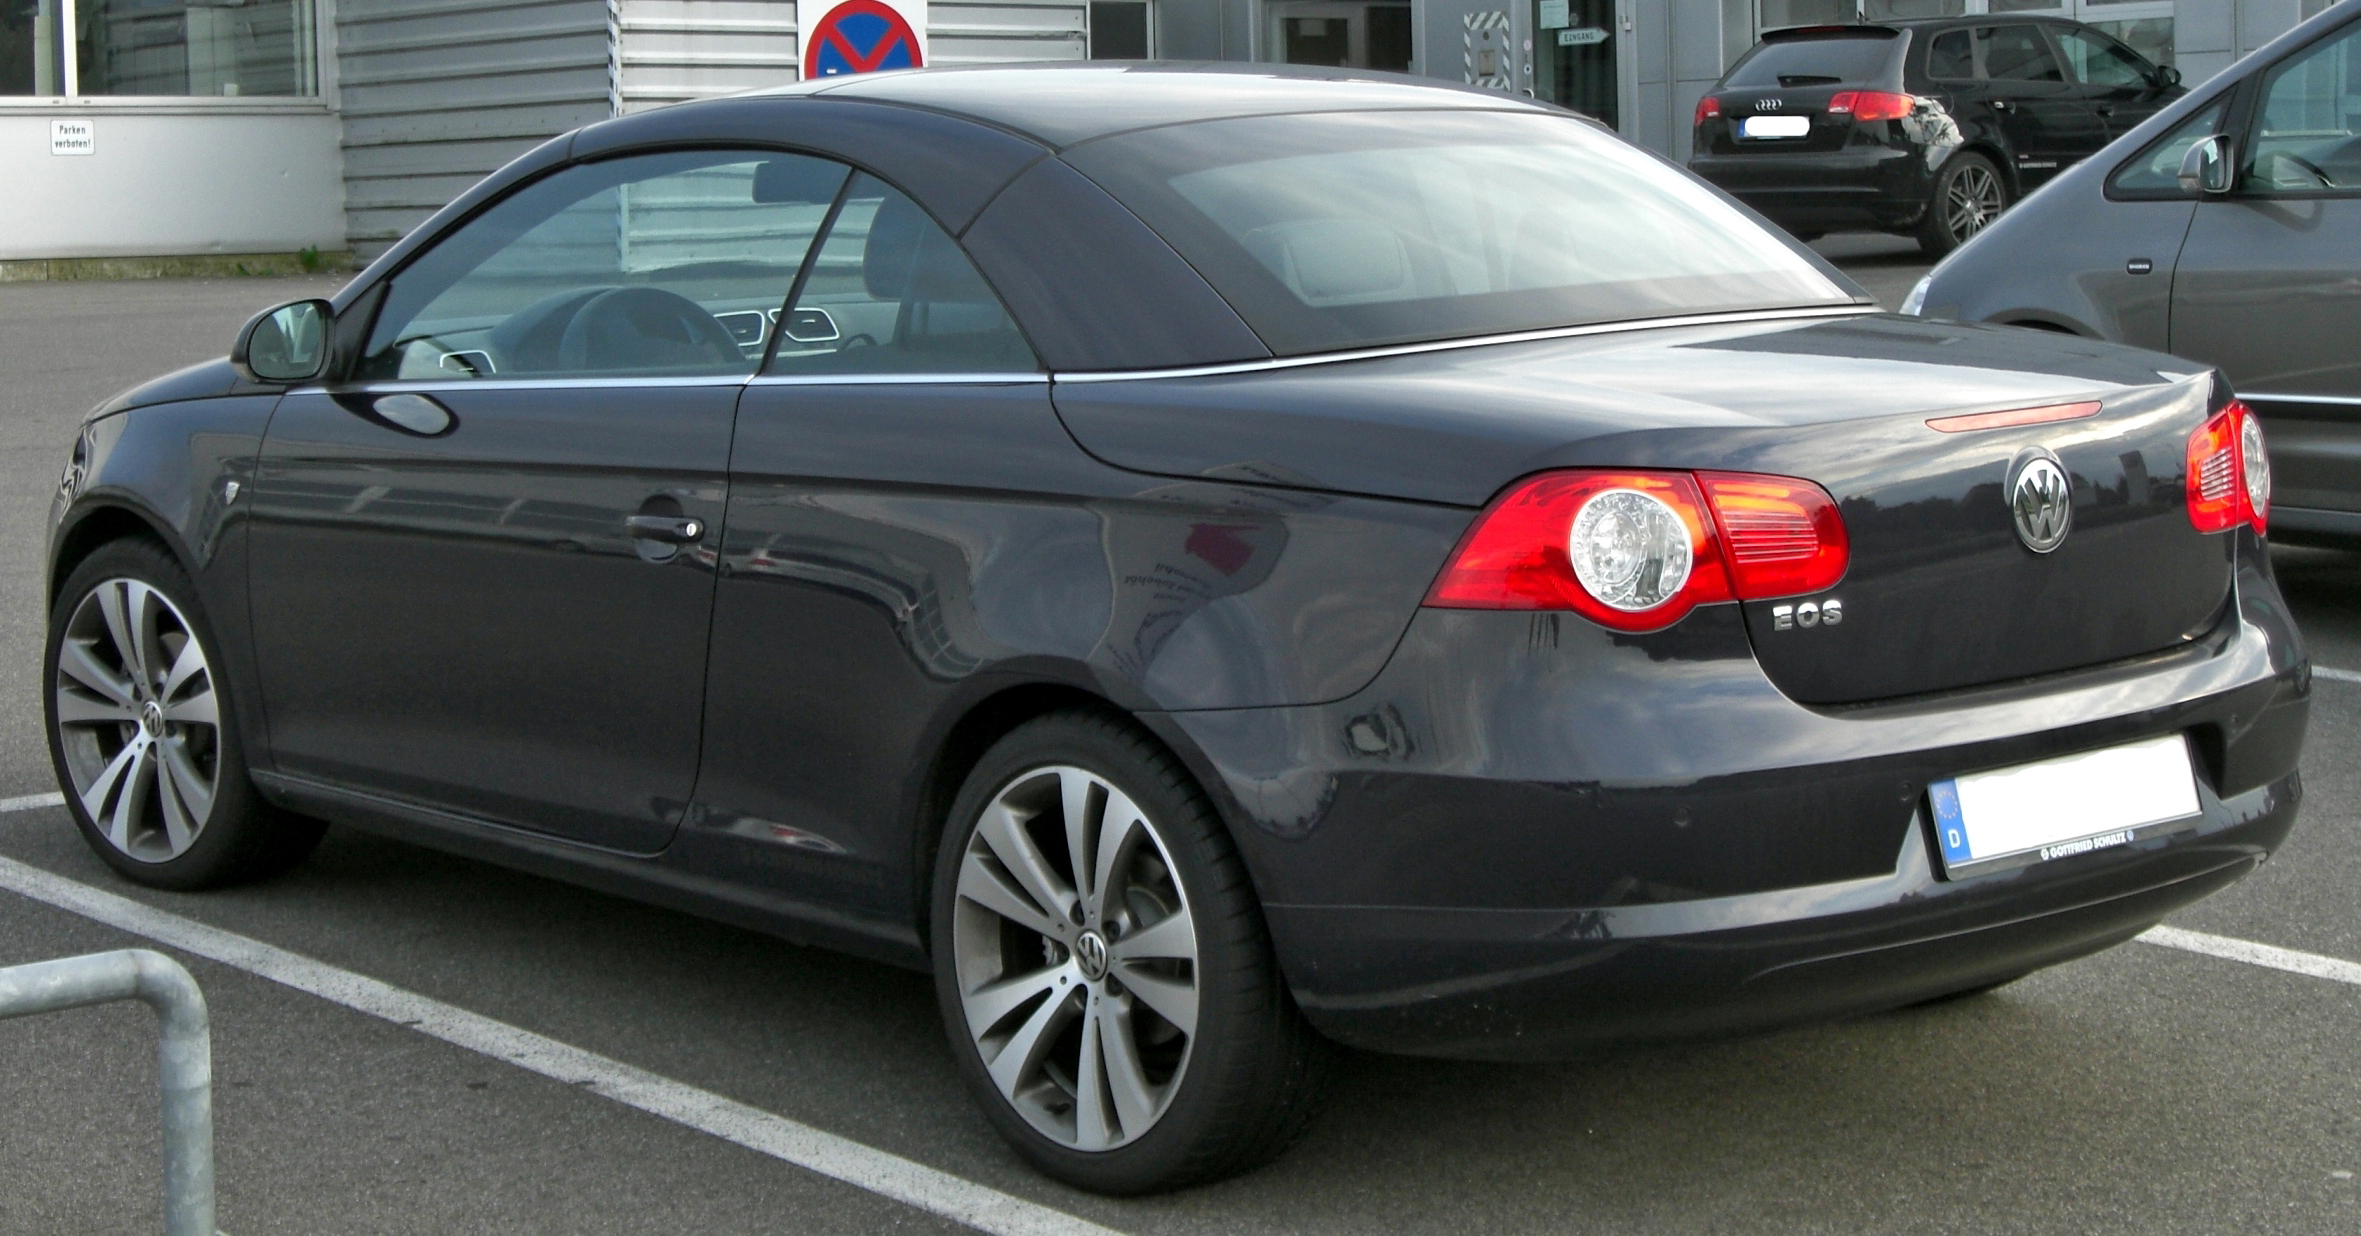 File:VW Eos rear-3.JPG - Wikimedia Commons